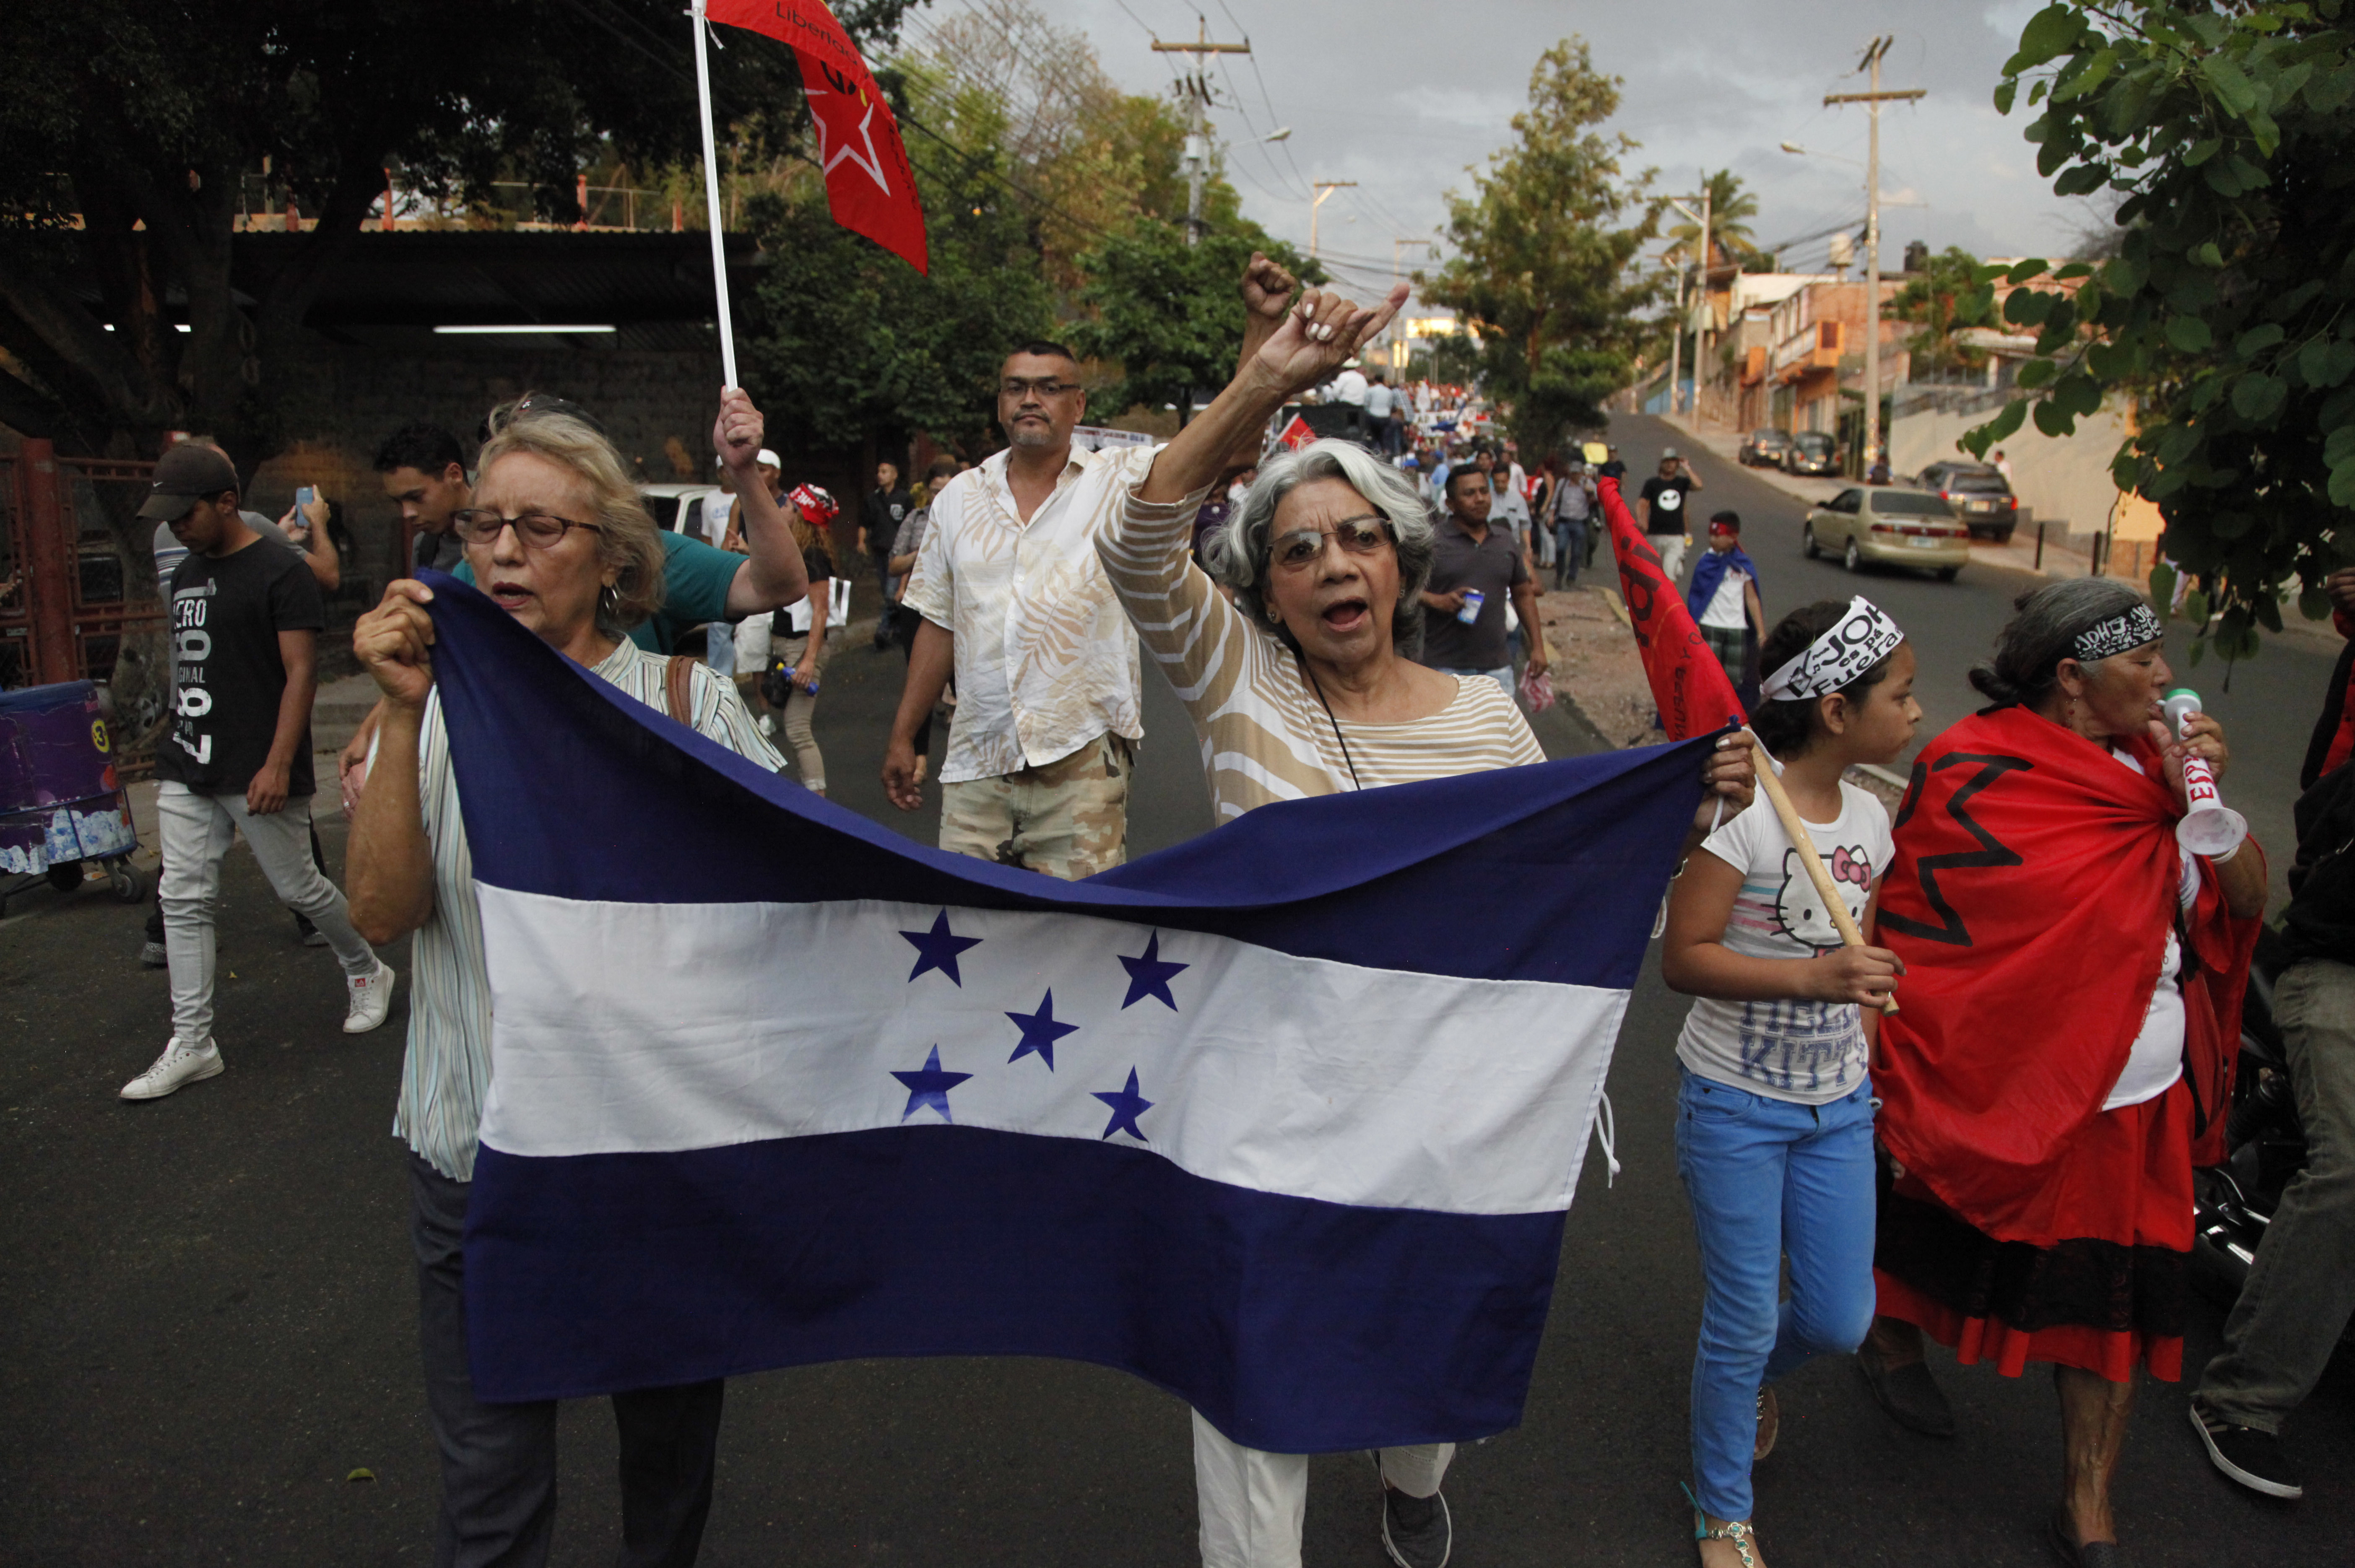 """Members of the opposition to the administration of Honduran President Juan Orlando Hernandez march on Friday to protest the U.S. government's decision to end the Temporary Protected Status designation for nearly 57,000 people from Honduras. Hernandez called the decision a sovereign issue for Washington, adding that """"we deeply lament it."""""""